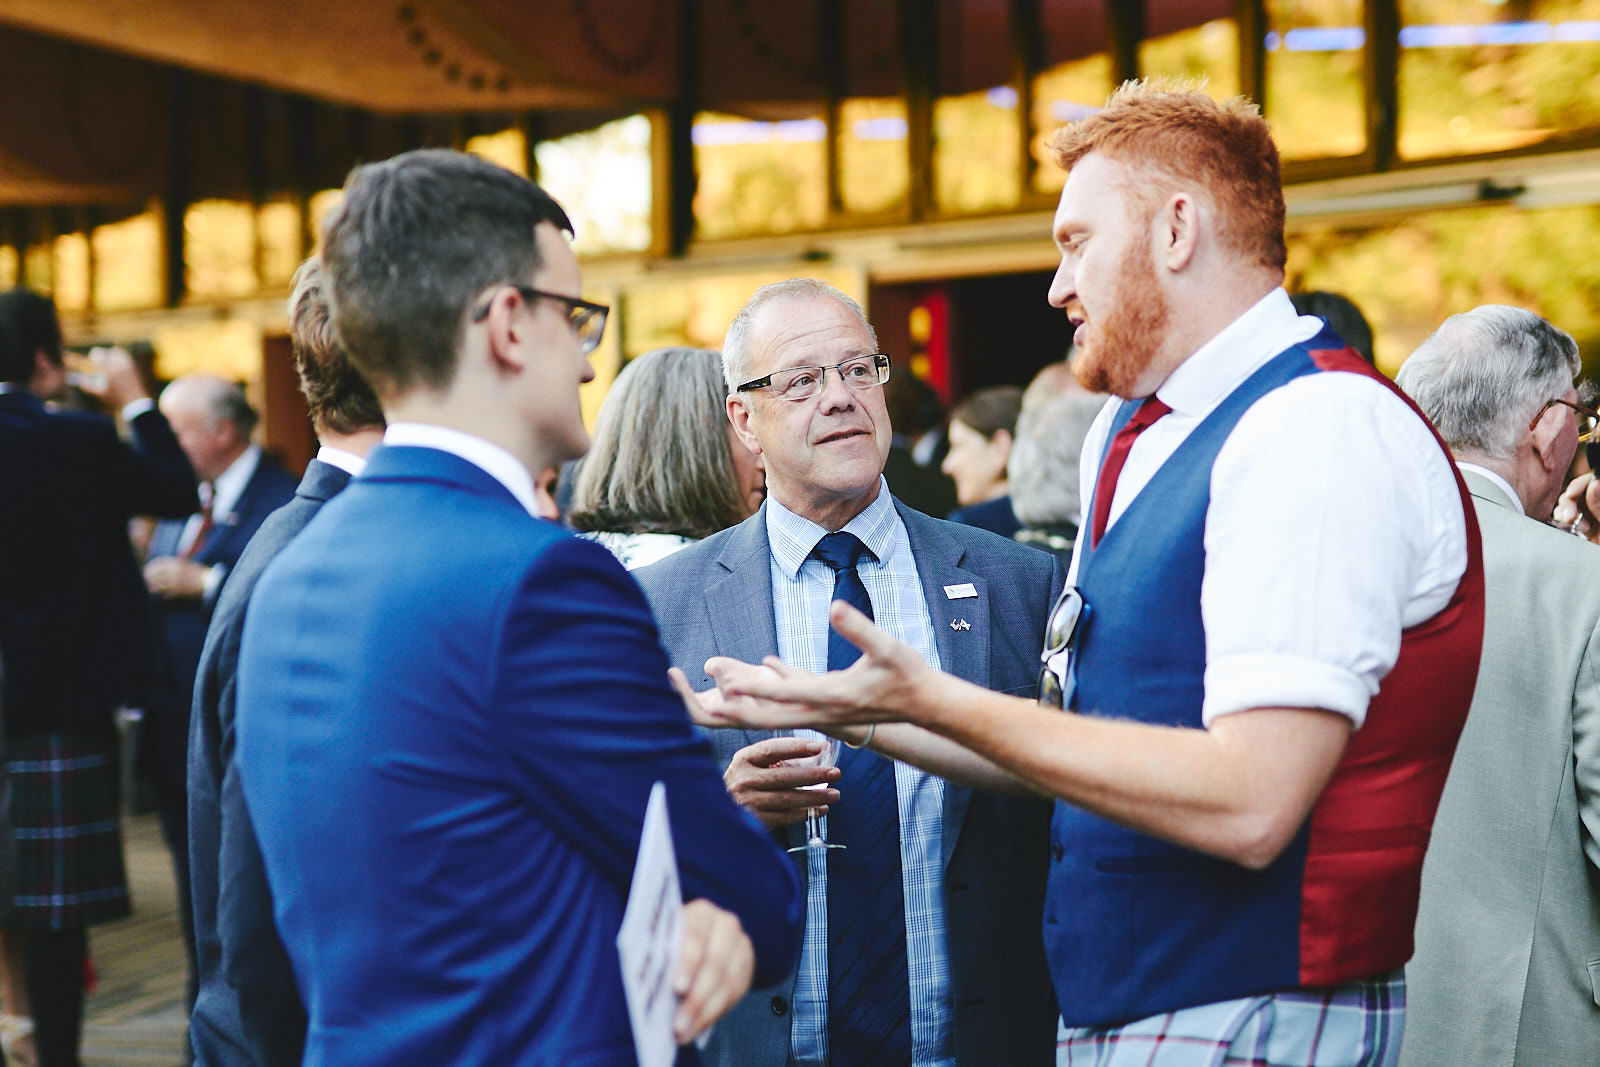 US consulate Edinburgh 4th of July celebration 2018 - 204 web.jpg